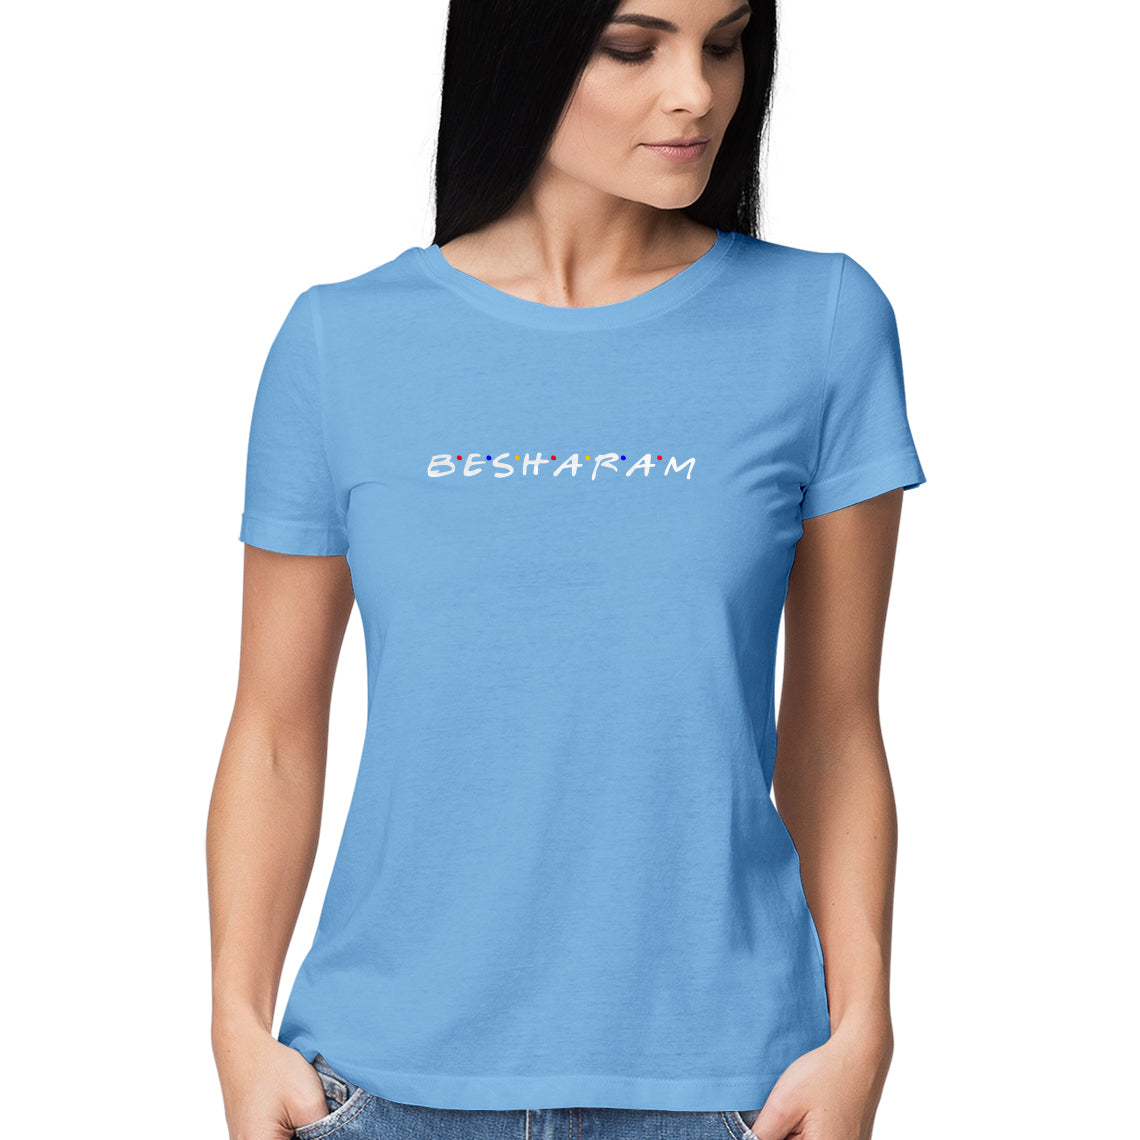 Besharam Women's T-shirt